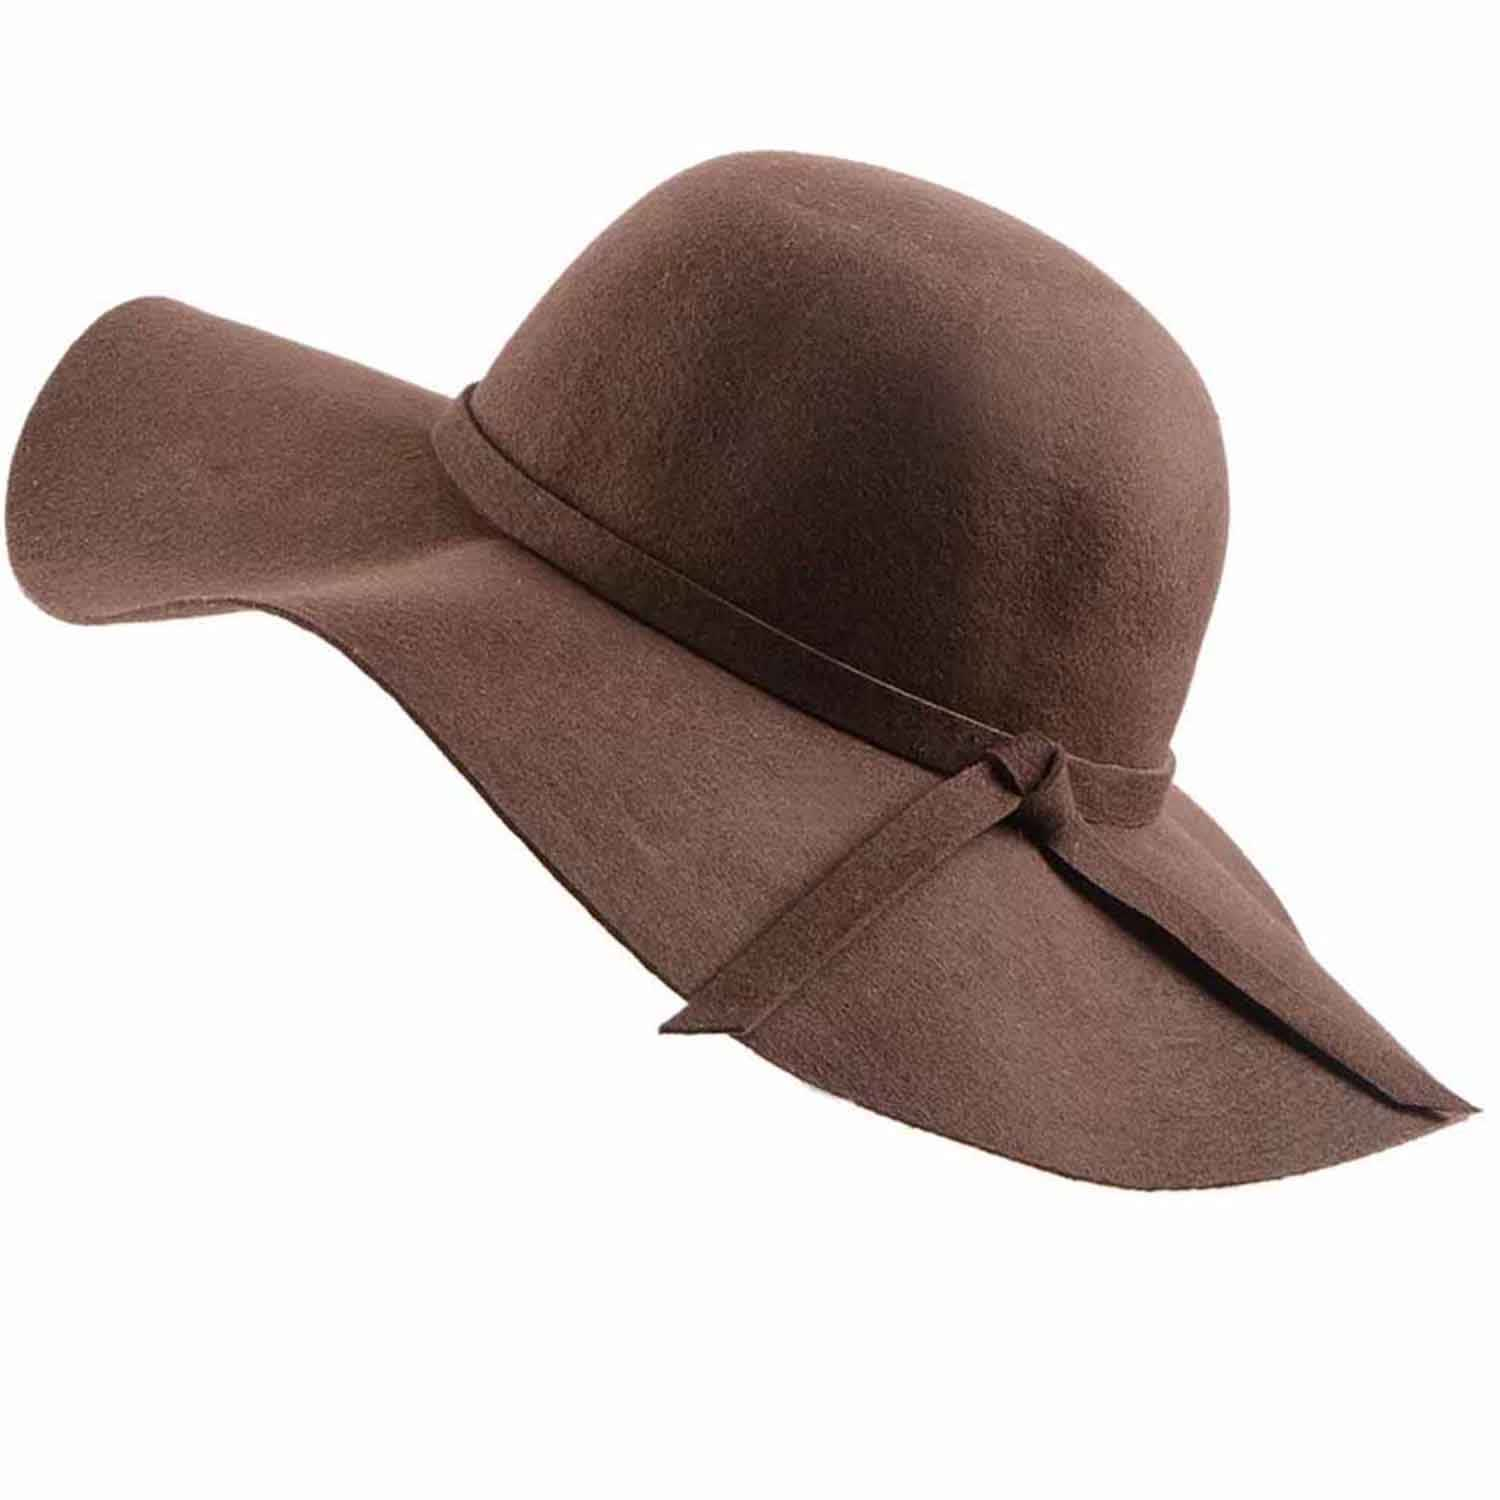 6f1067e91187c Ladies Brown Wool Fedora Hat image